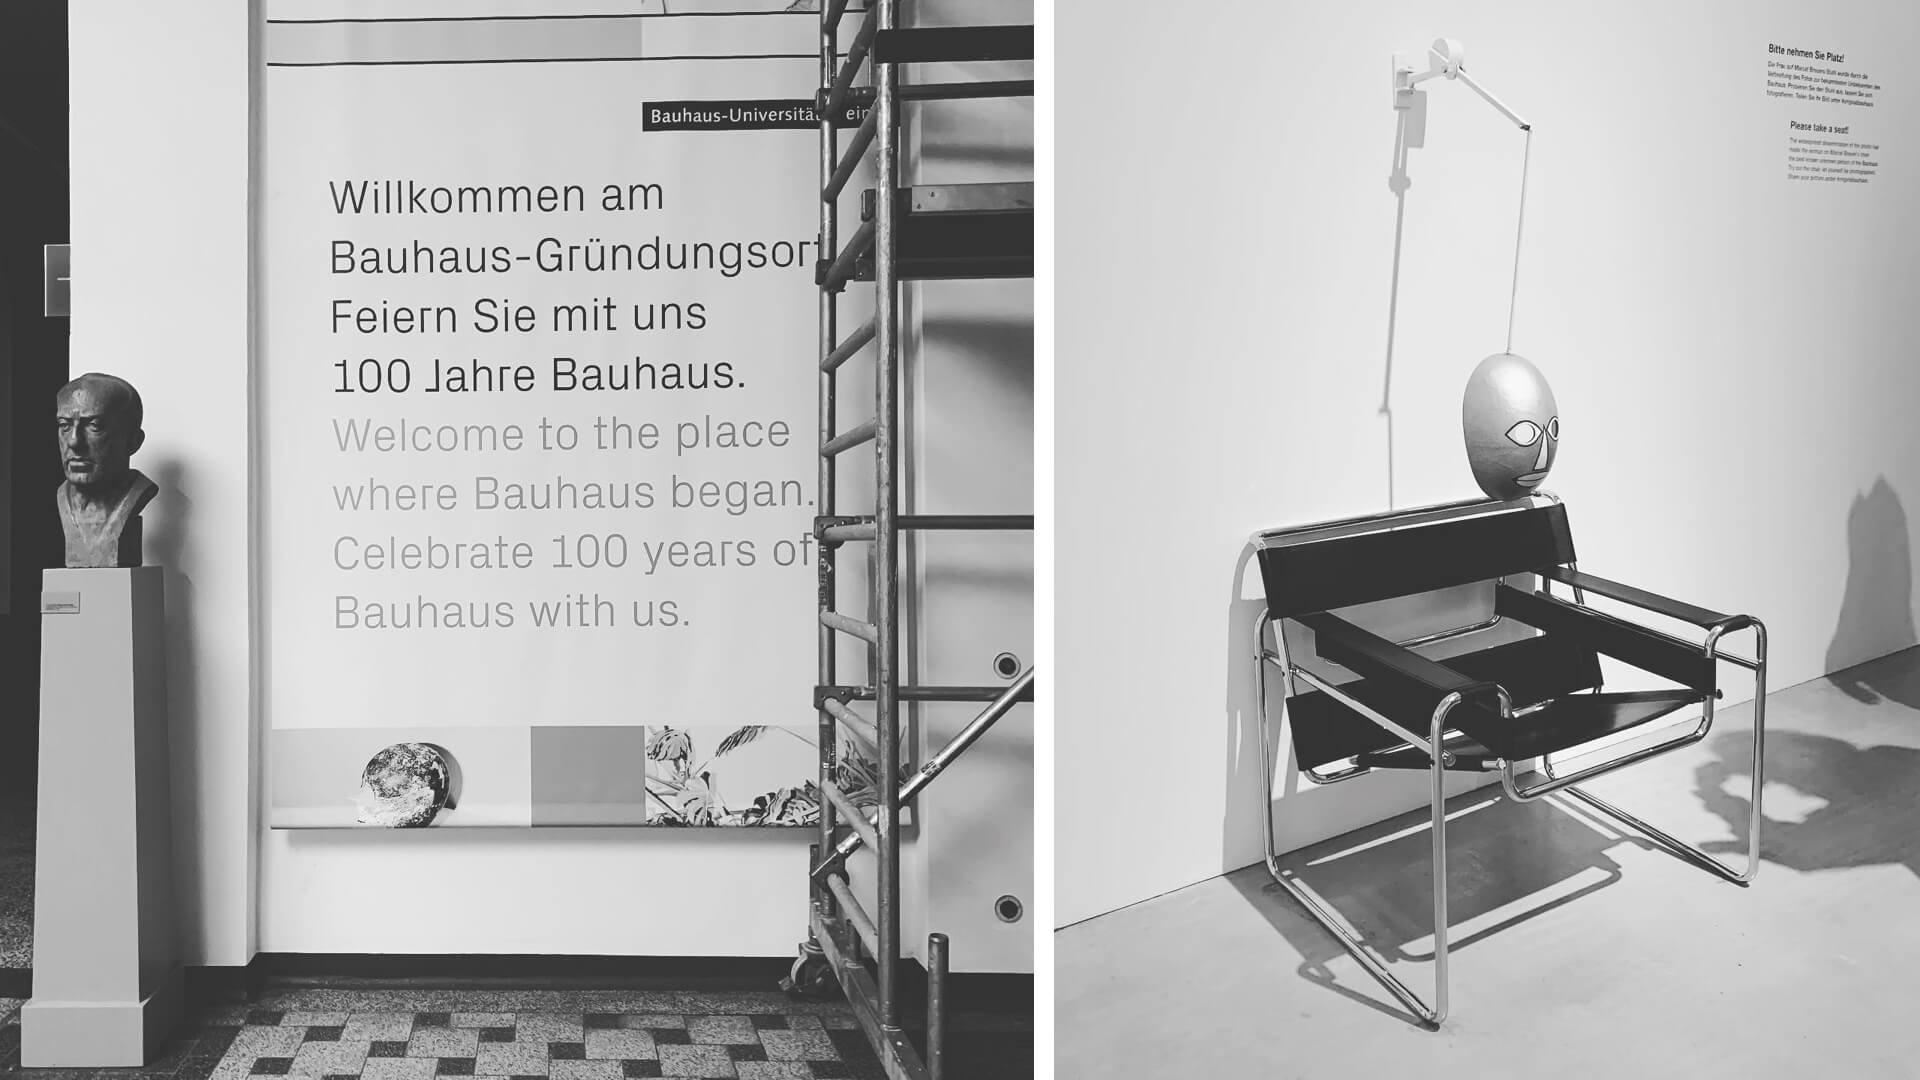 (L) Walter Gropius's bust at the Bauhaus Wiemar campus, (R) Recreating the most famous Bauhaus picture at the 'Original Bauhaus' exhibition at Berlin | Bauhaus | Germany | STIRworld